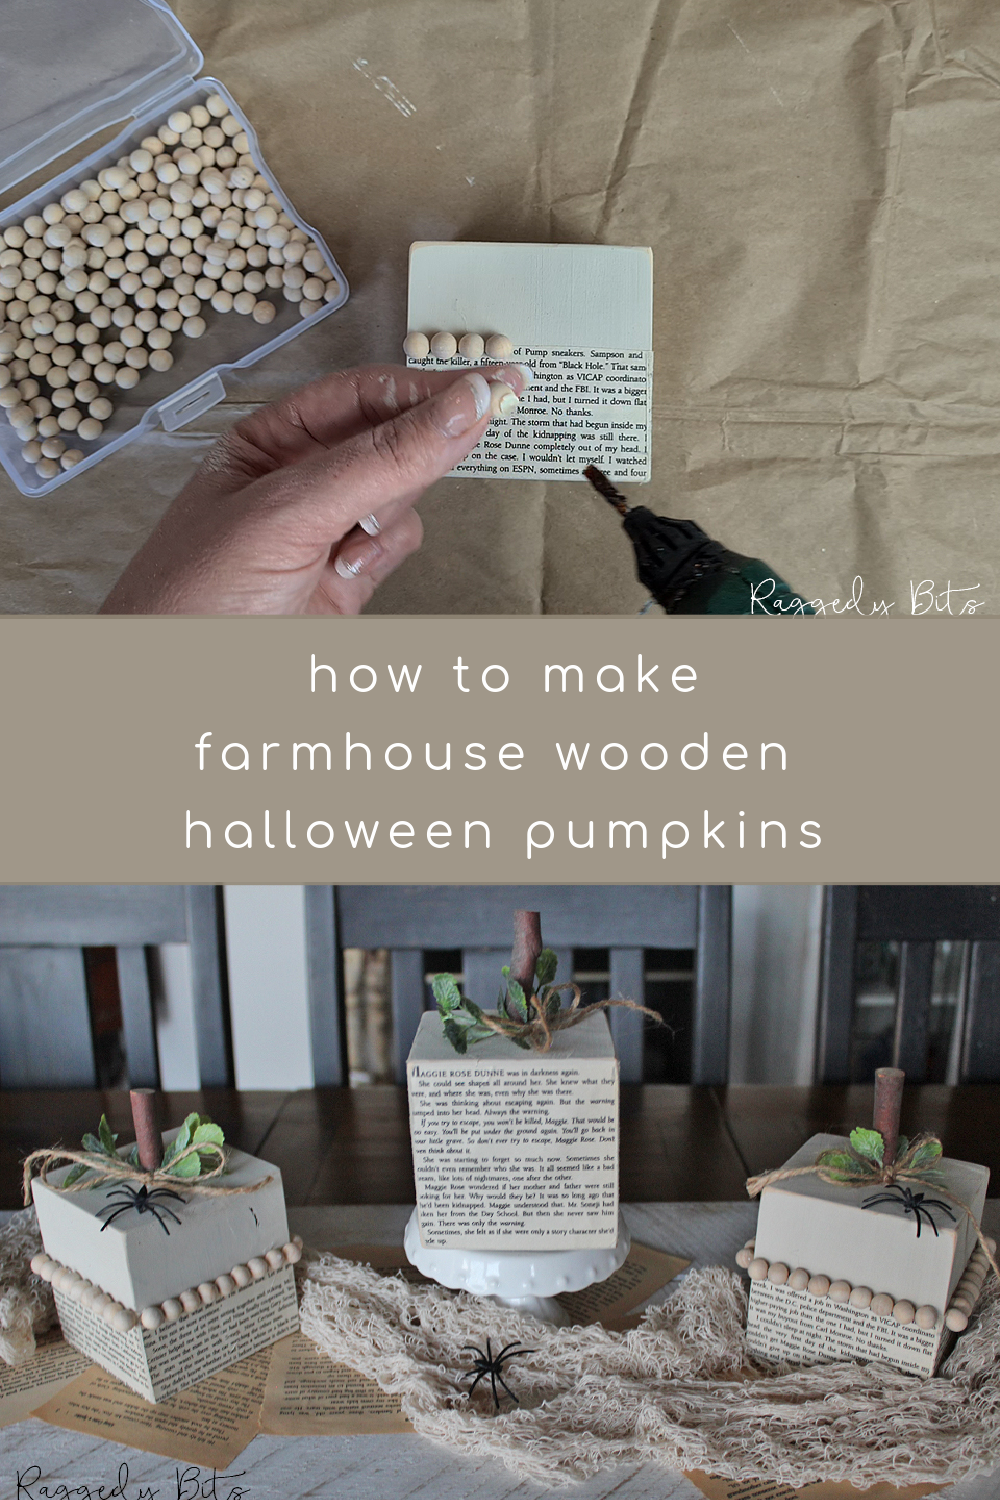 Sharing a fun easy way on how to make wooden Halloween pumpkins using book pages. You can use them also to see in the winter months | www.raggedy-bits.com | #raggedybits #pumkins #halloween #diy #wood #farmhouse #bookpage #decorate #fusionmineralpaint